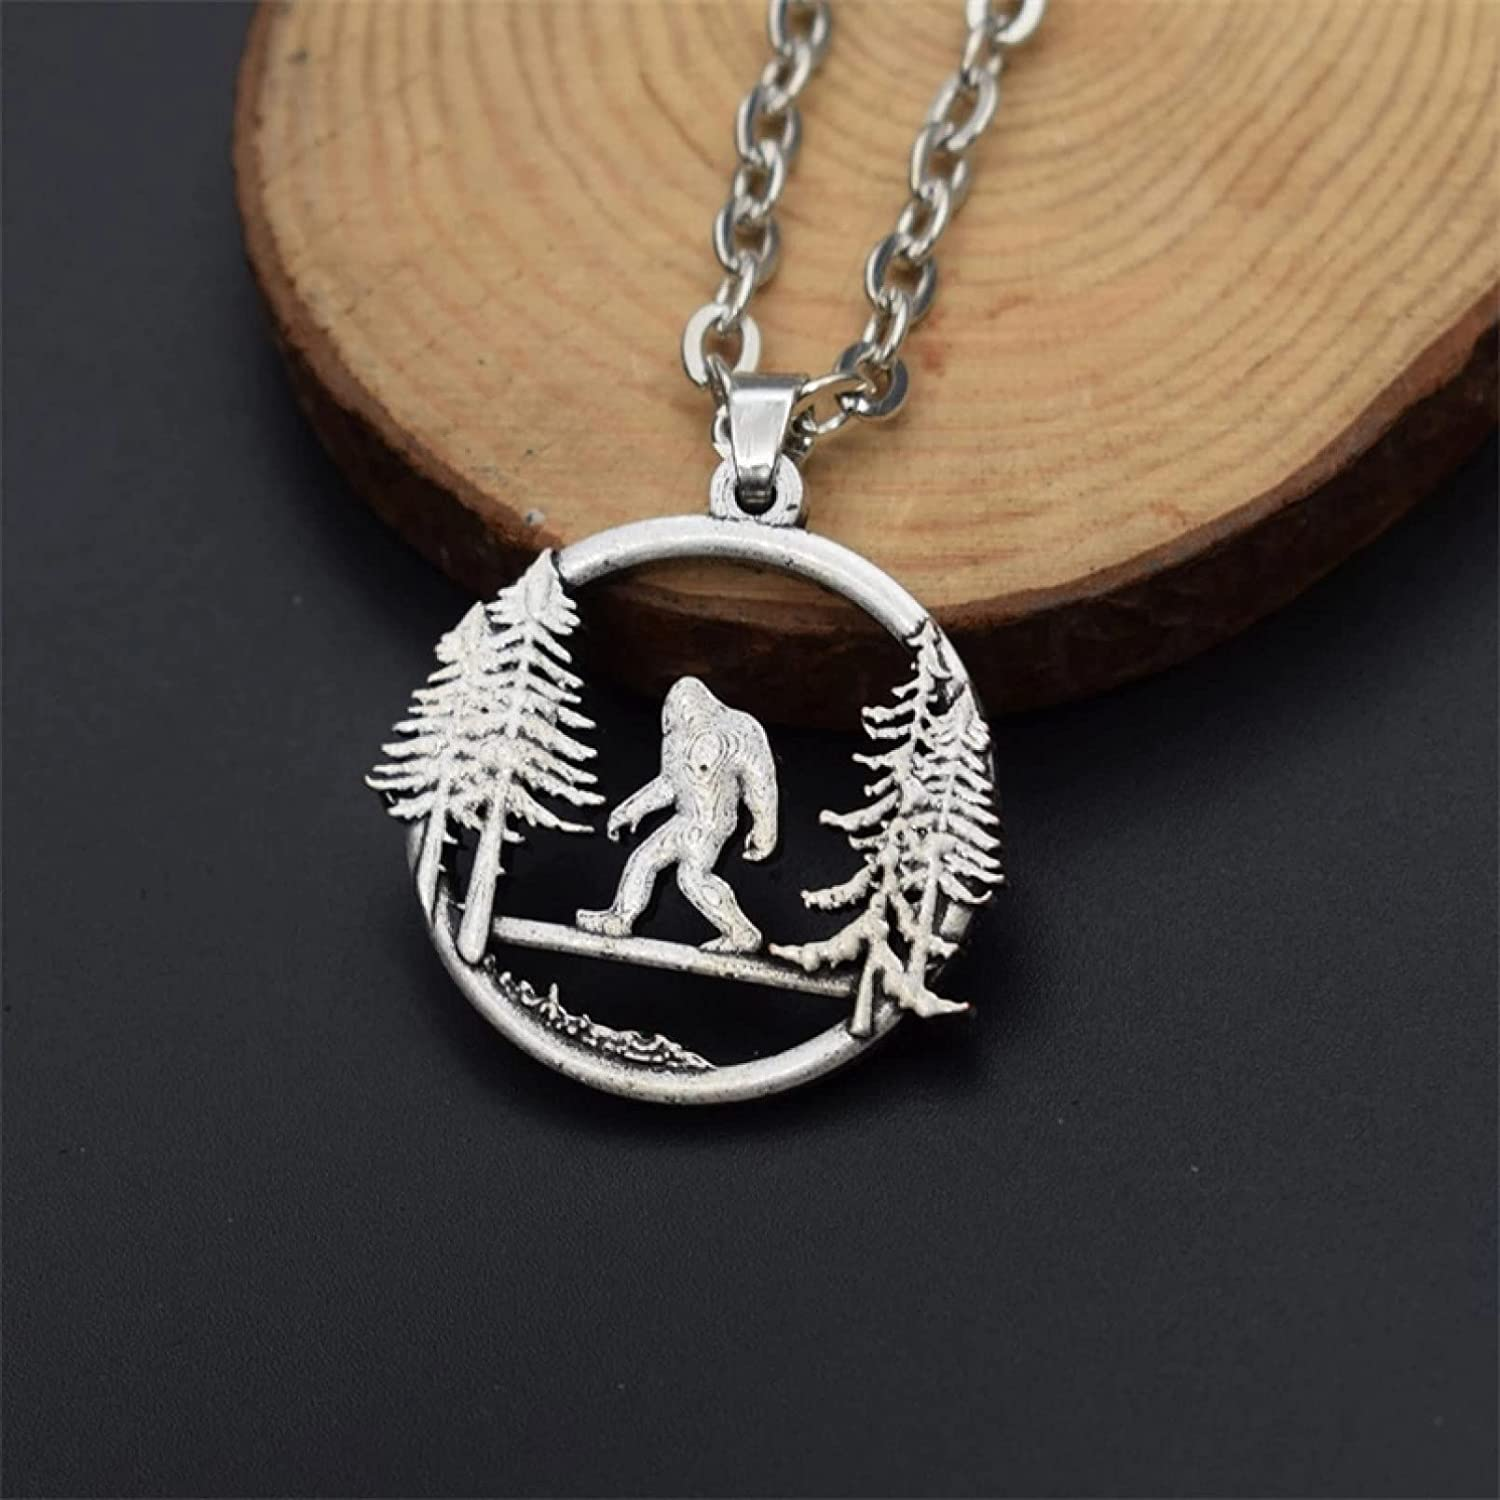 WDBUN Necklace Pendant Bigfoot Necklace Bigfoot in The Pine Tree Mountain Outdoor Adventure Jewelry Christmas Mother's Day Valentine's Day Birthday Gift